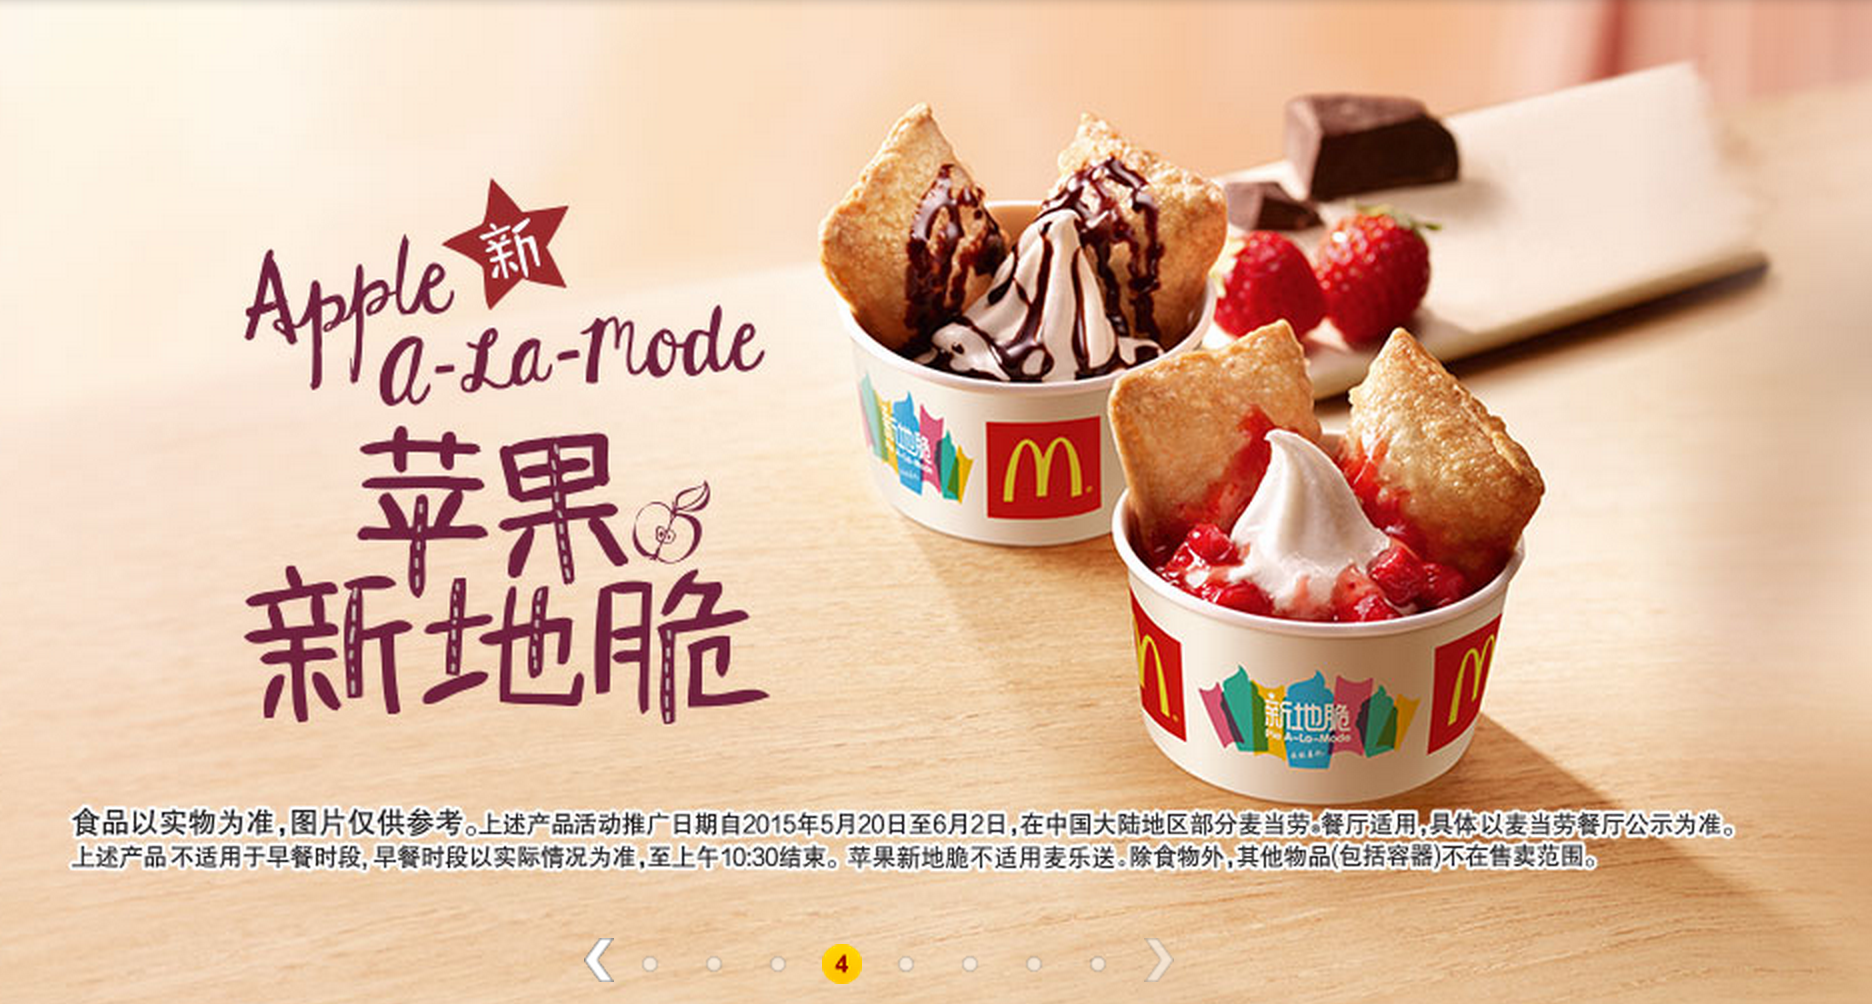 kfc entry mode in china Introduction kfc has become synonymous with foreign fast-food after its entry in  china in 1987, kfc opened the first quick-service restaurant, which is totally a.